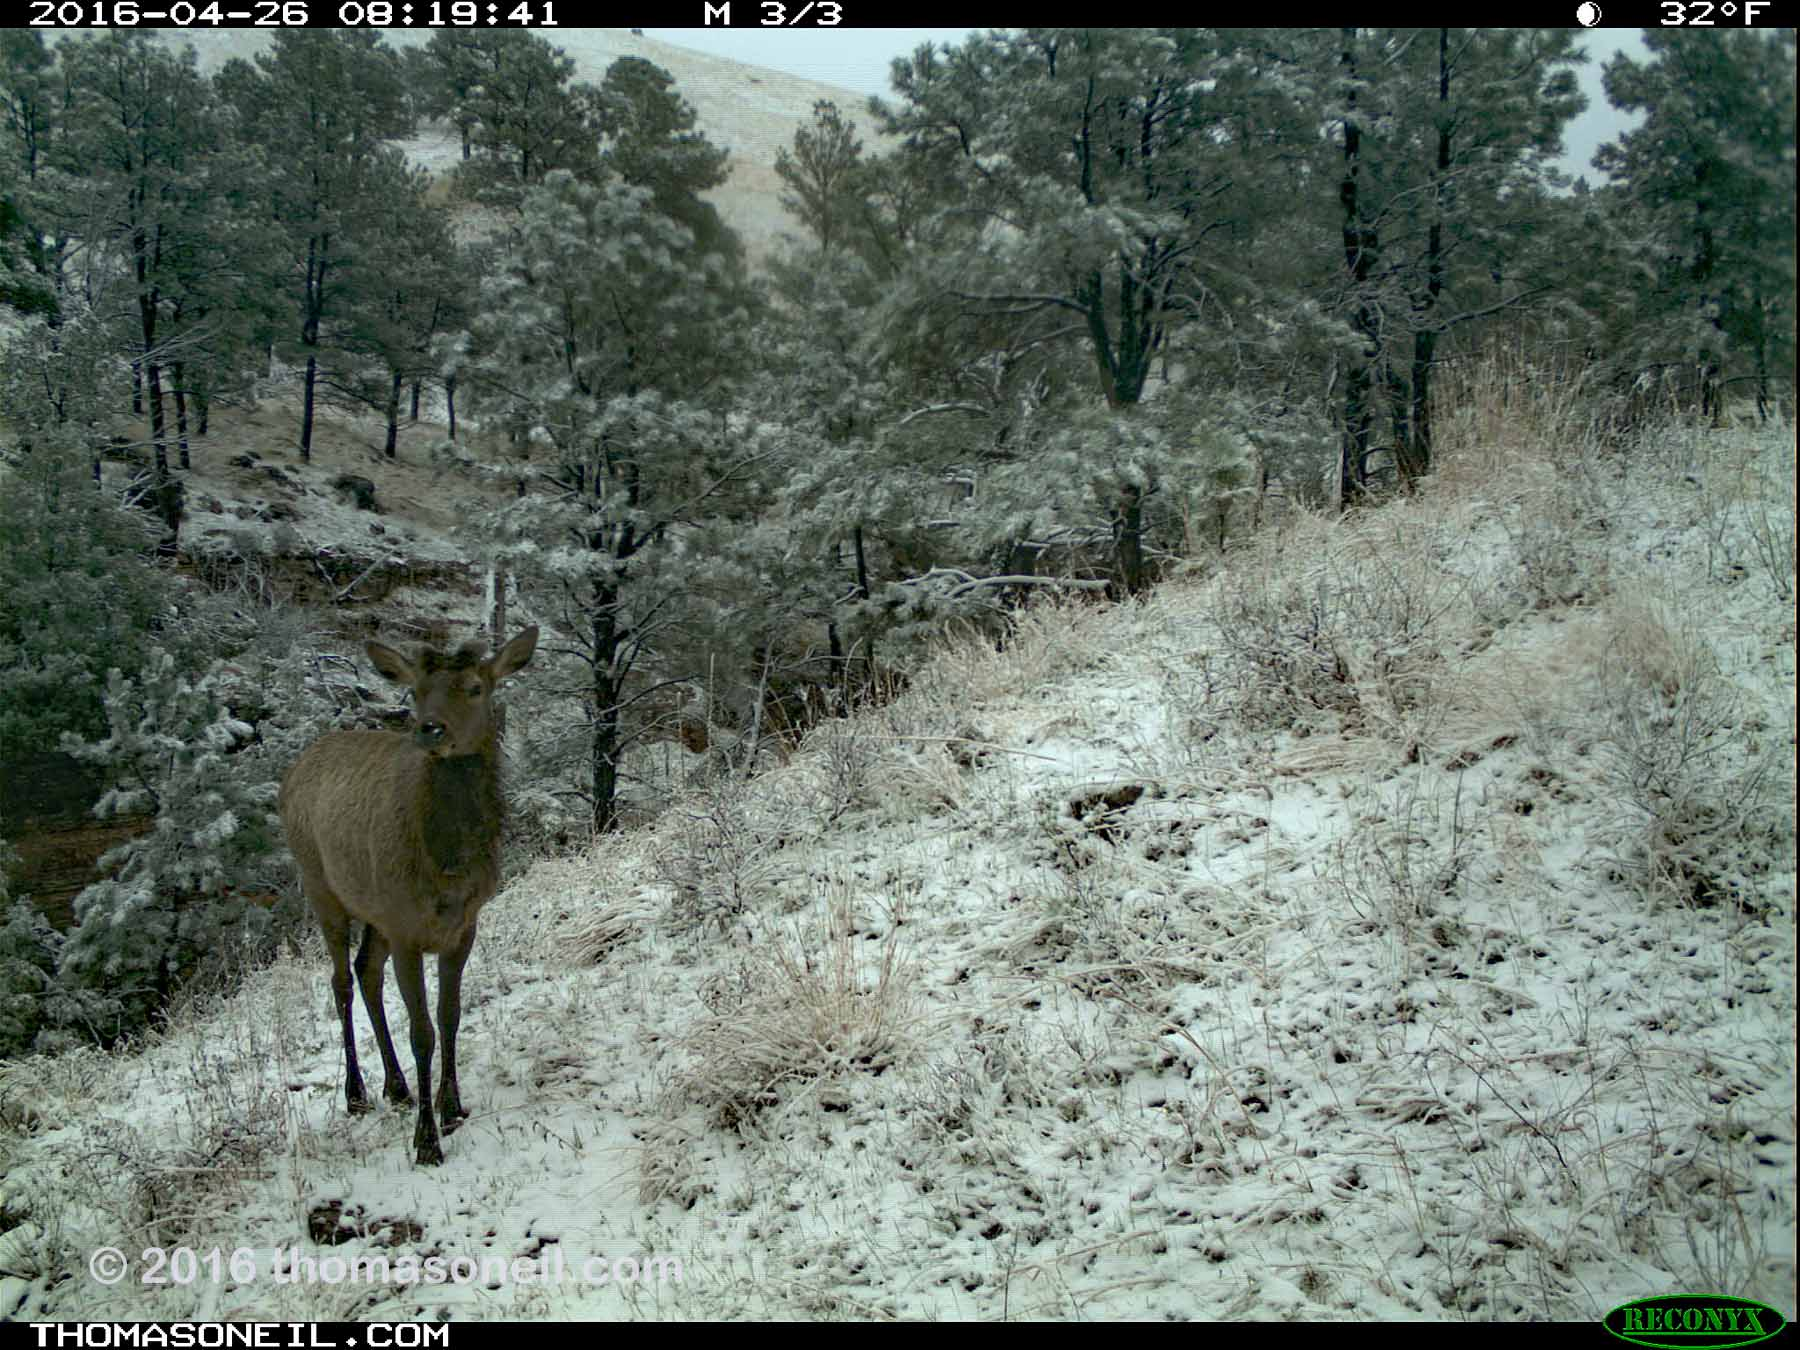 Trailcam image from Wind Cave National Park in April 2016, elk in snow.  Click for next photo.